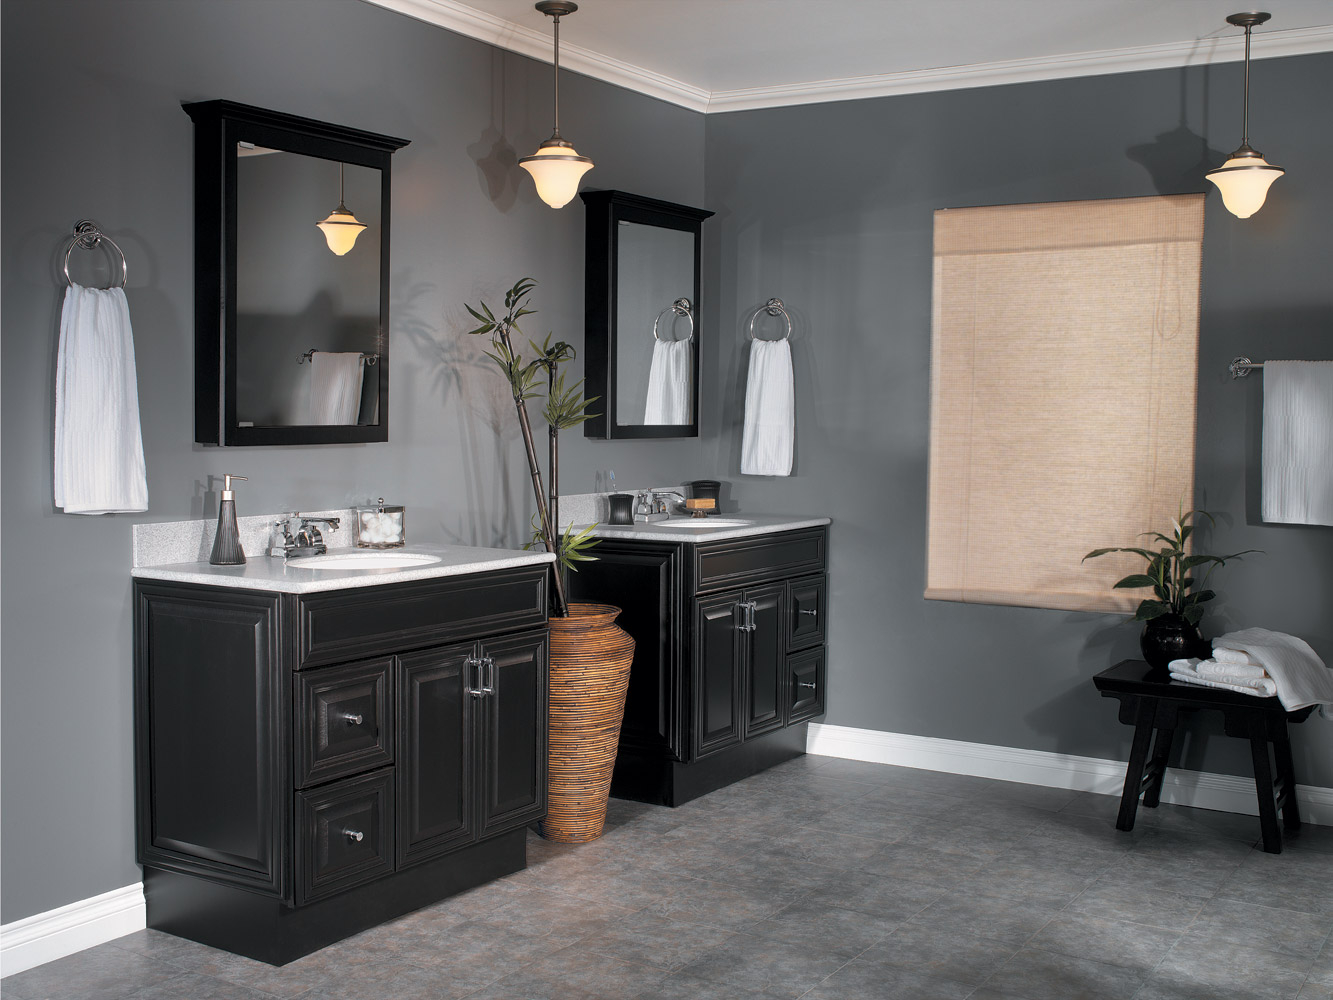 Beautiful The Best Bathroom Vanity Ideas - Midcityeast with Dark Bathroom Vanity